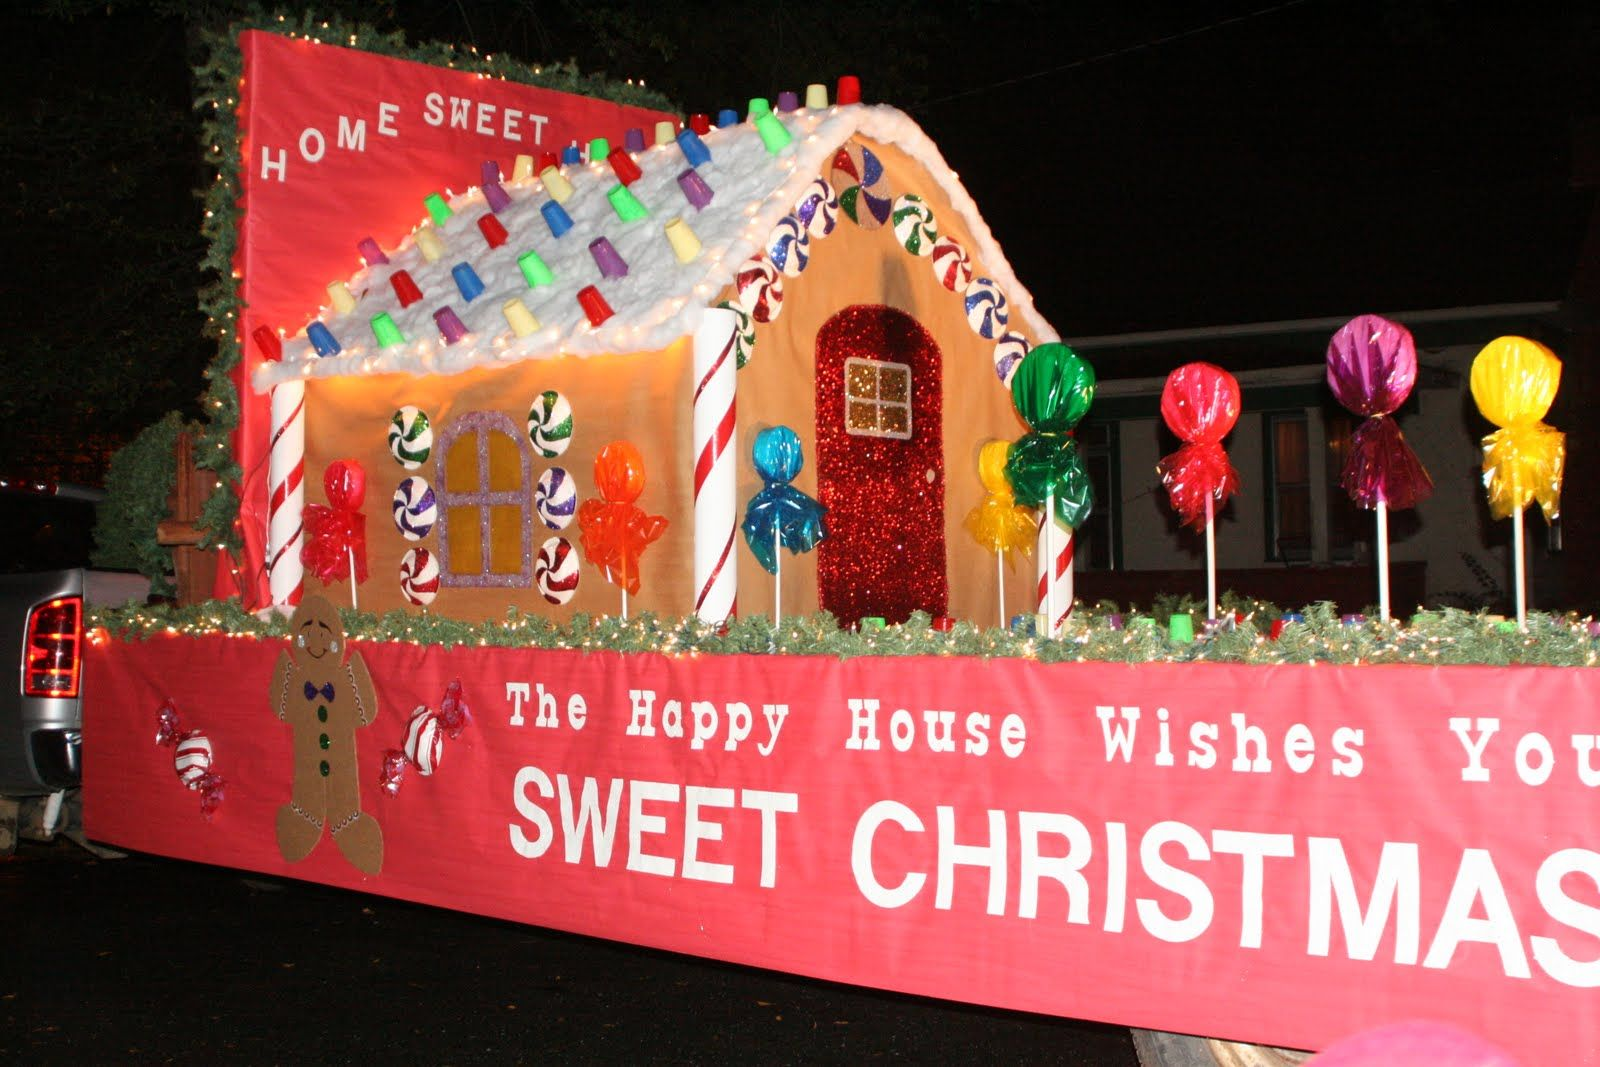 Church Christmas Floats | ... in the Slow Lane: Wai'anae Christmas ...